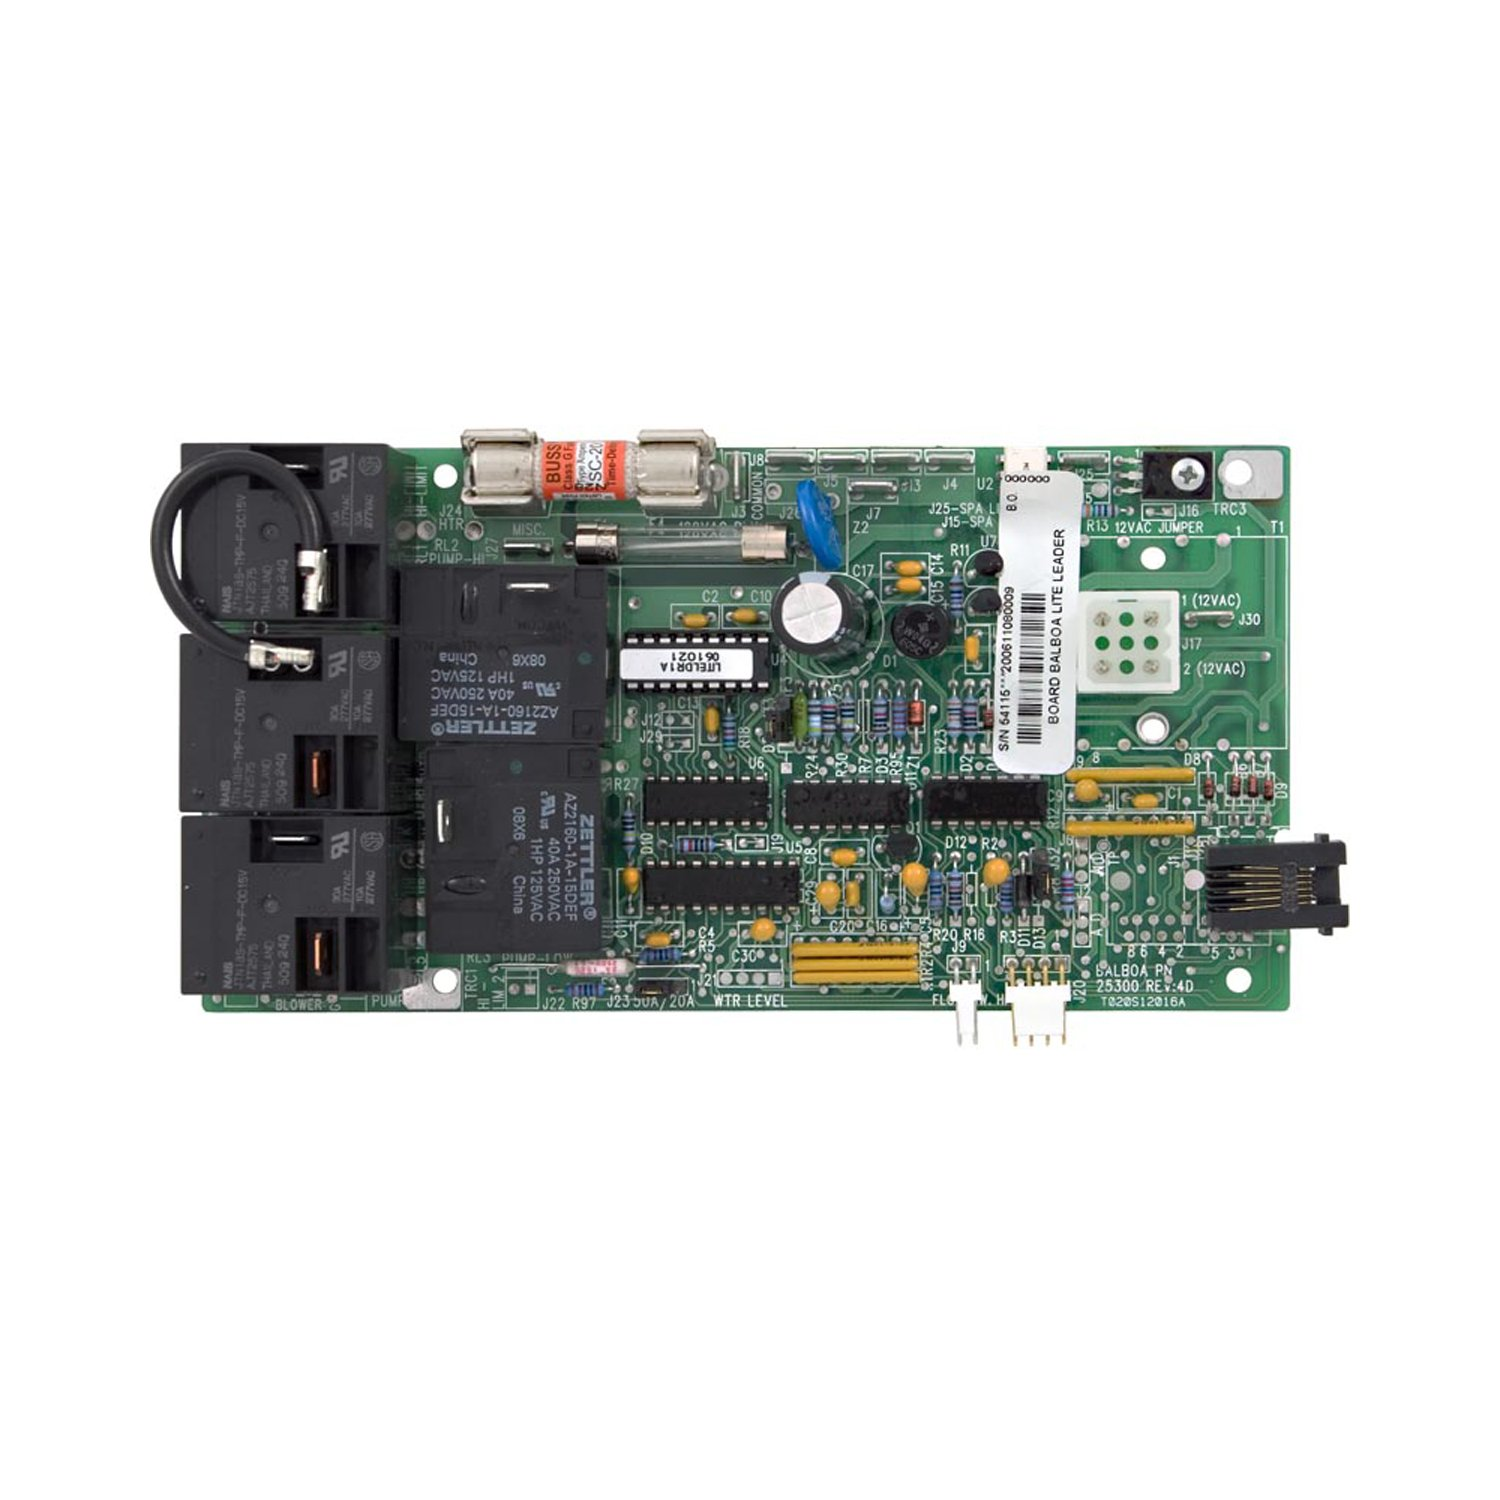 71Jv pRPSWL._SL1500_ amazon com balboa water group 54115 lite leader circuit board  at crackthecode.co